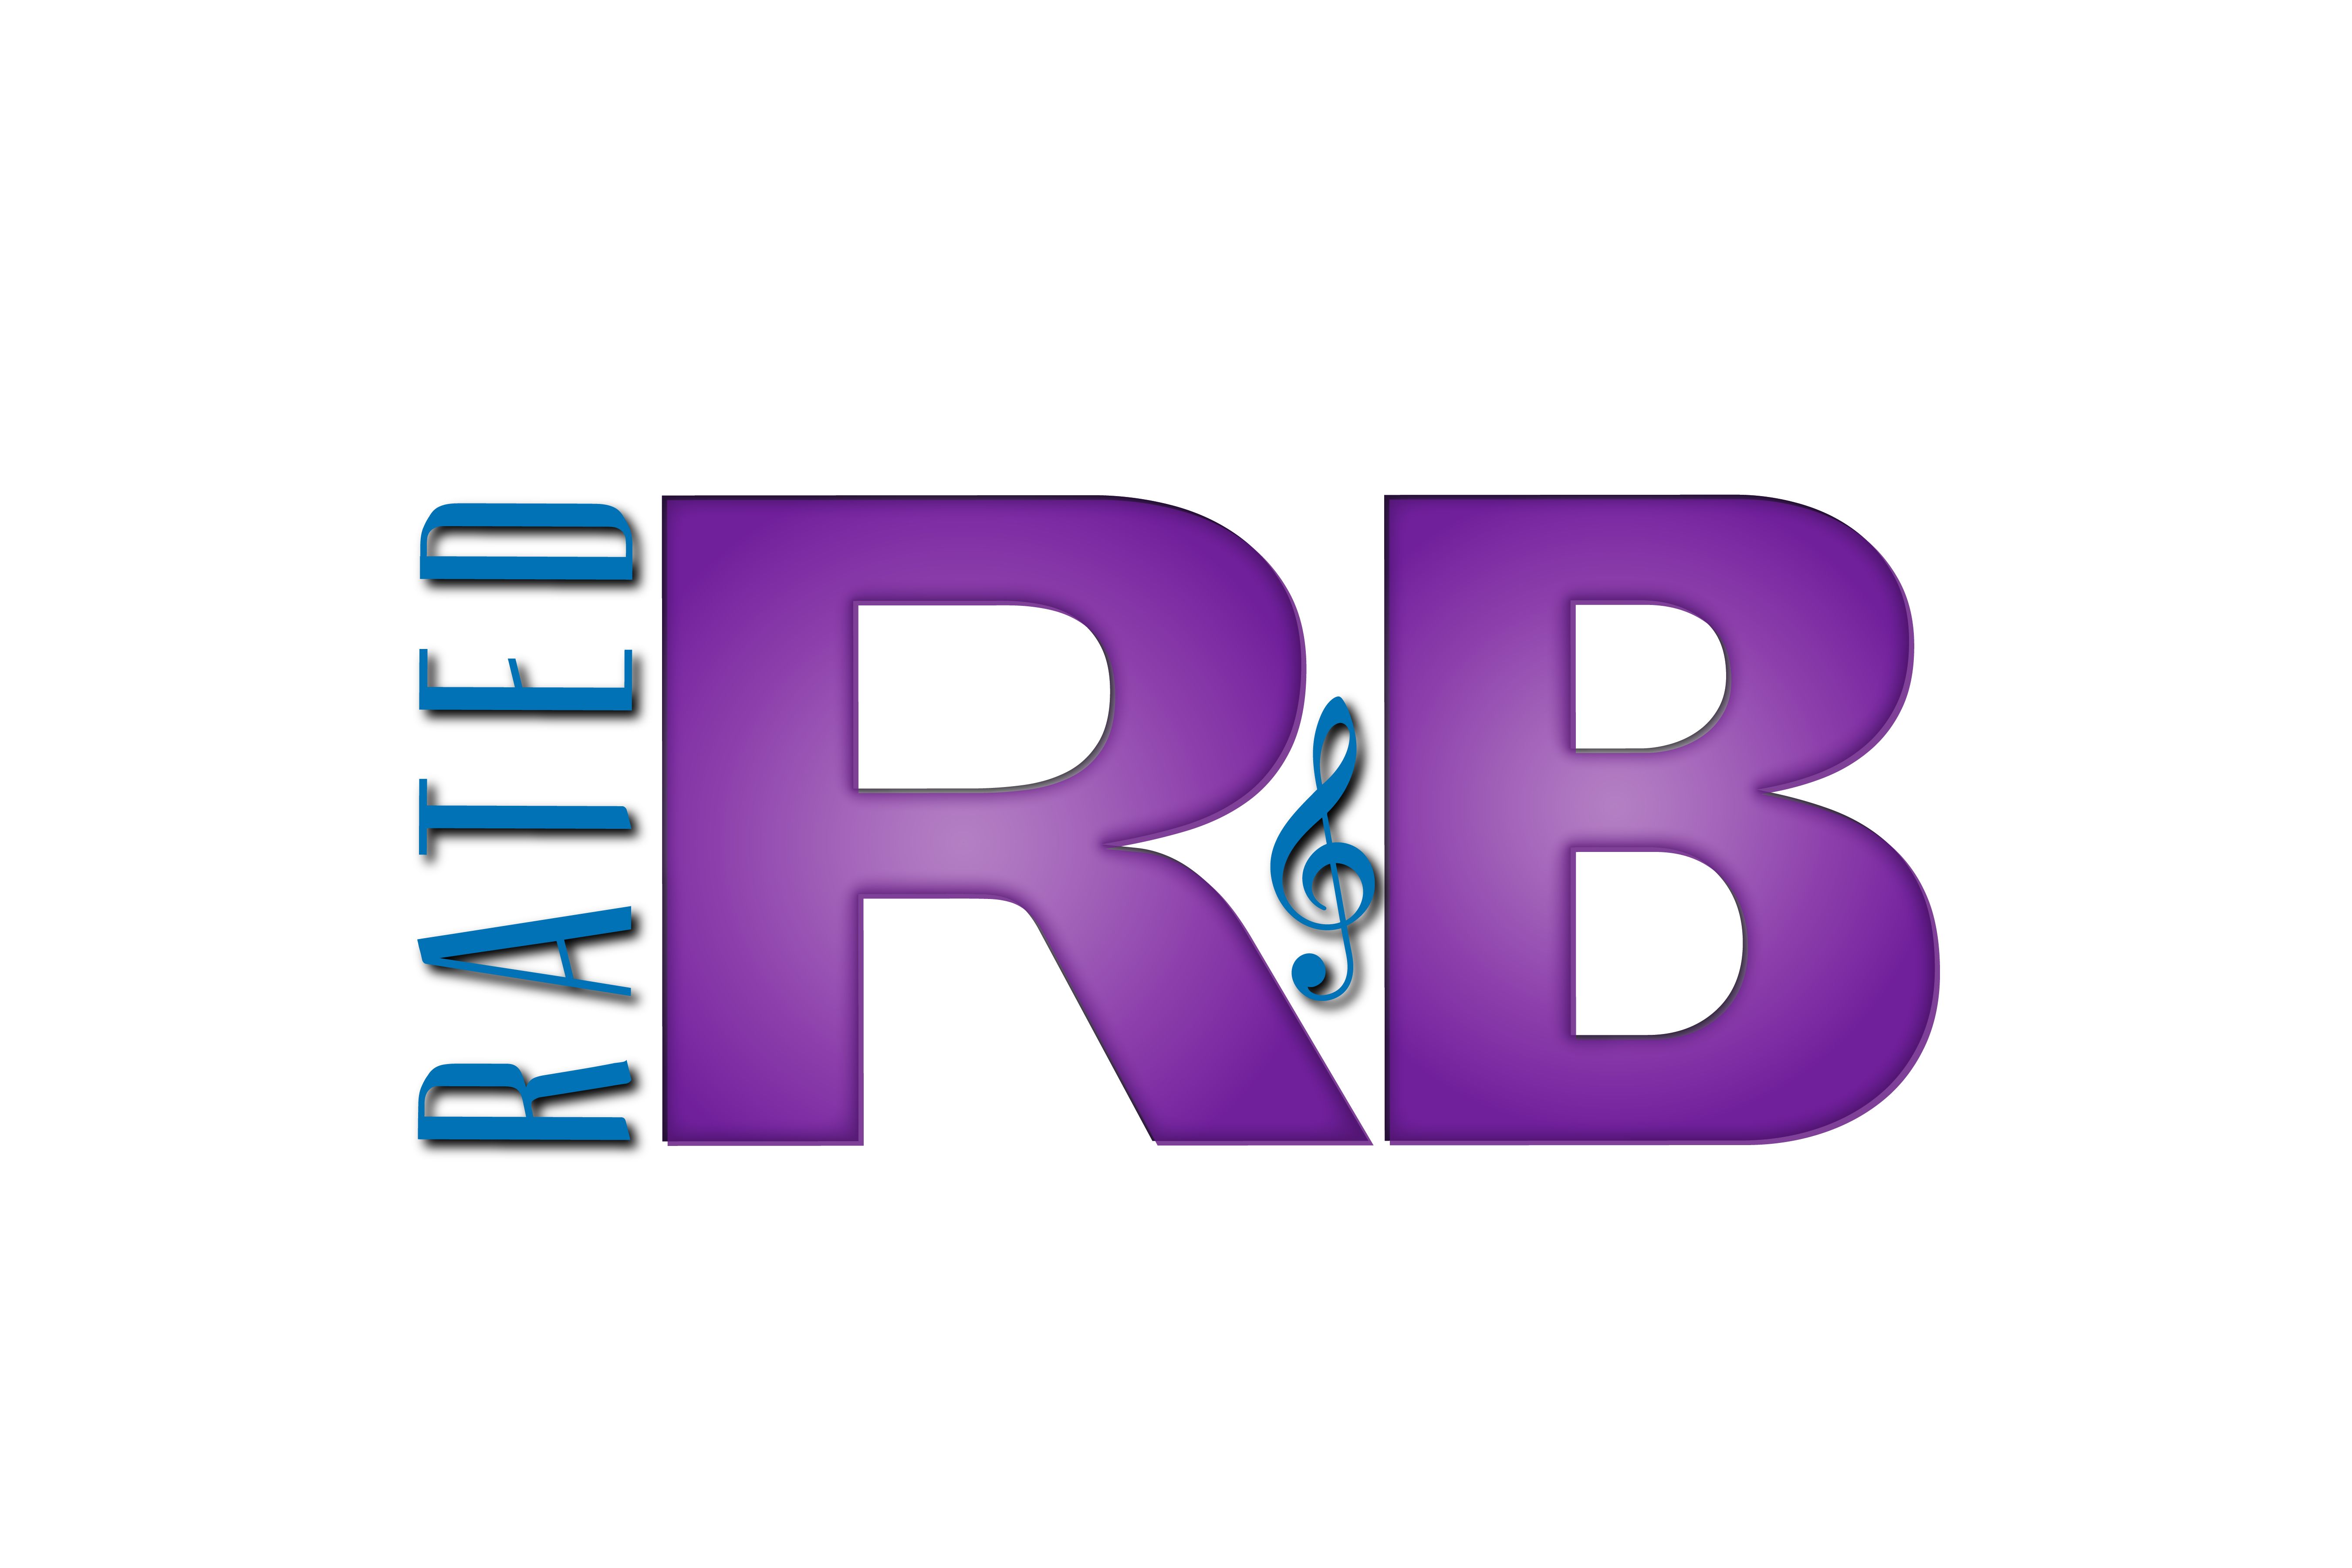 Rated R&B Logo Design-01-01 - Rated R&B